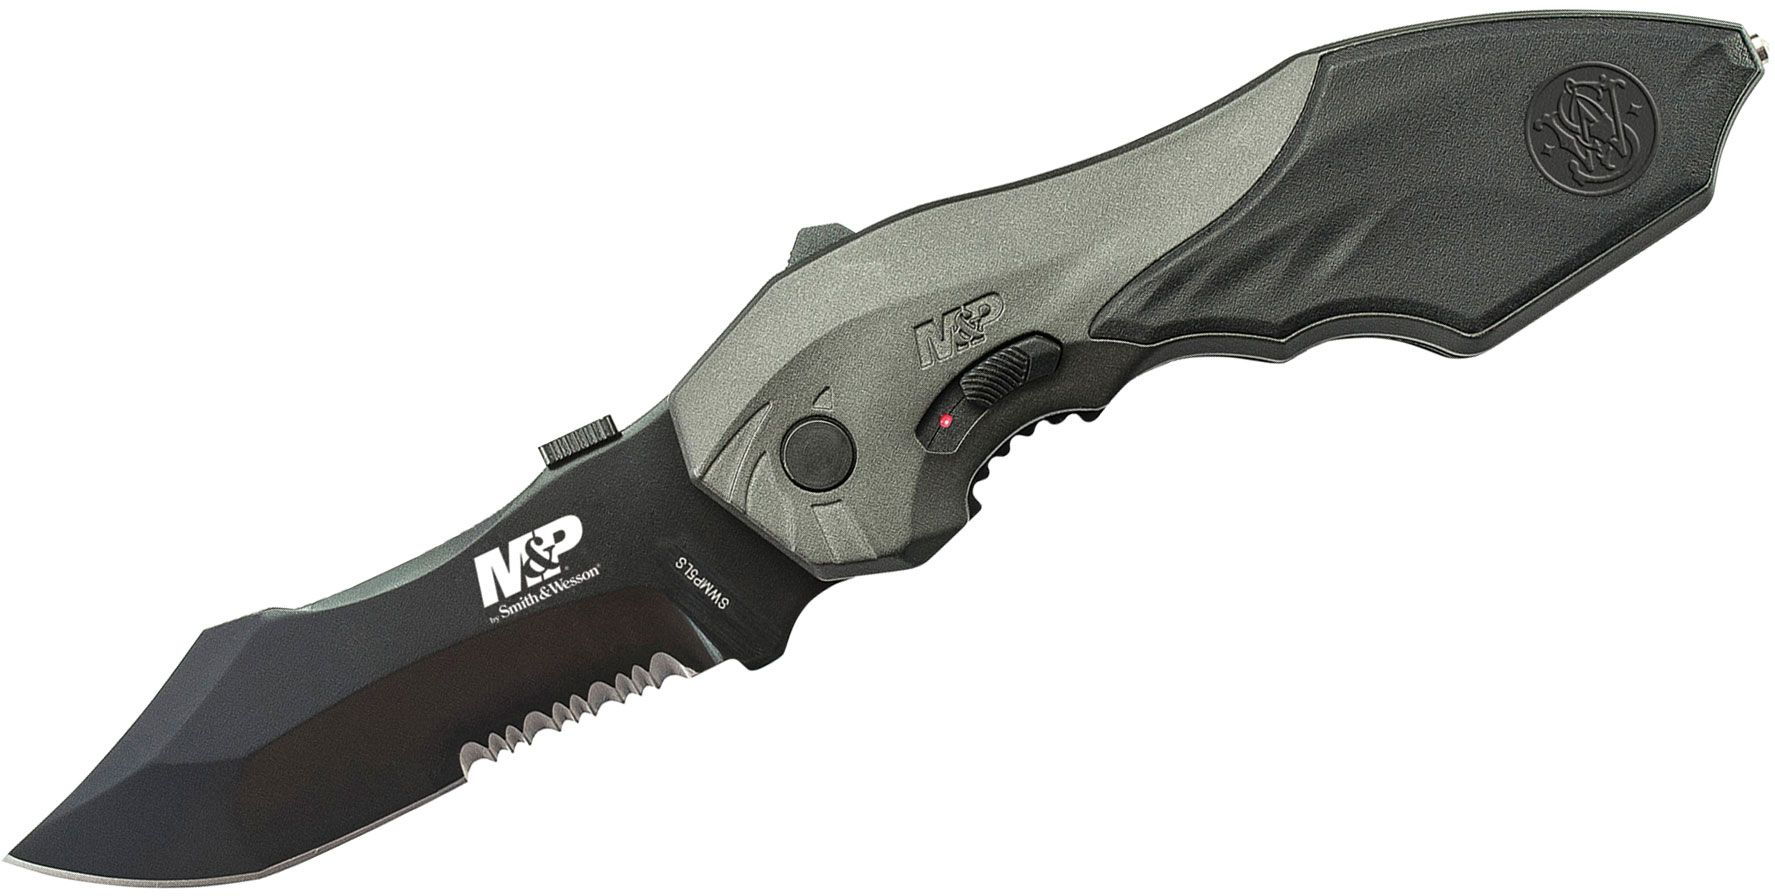 Smith & Wesson SWMP5LS M&P MAGIC Assisted Flipper 3.5 inch Black Combo Blade, Black Aluminum Handles with Rubber Inserts